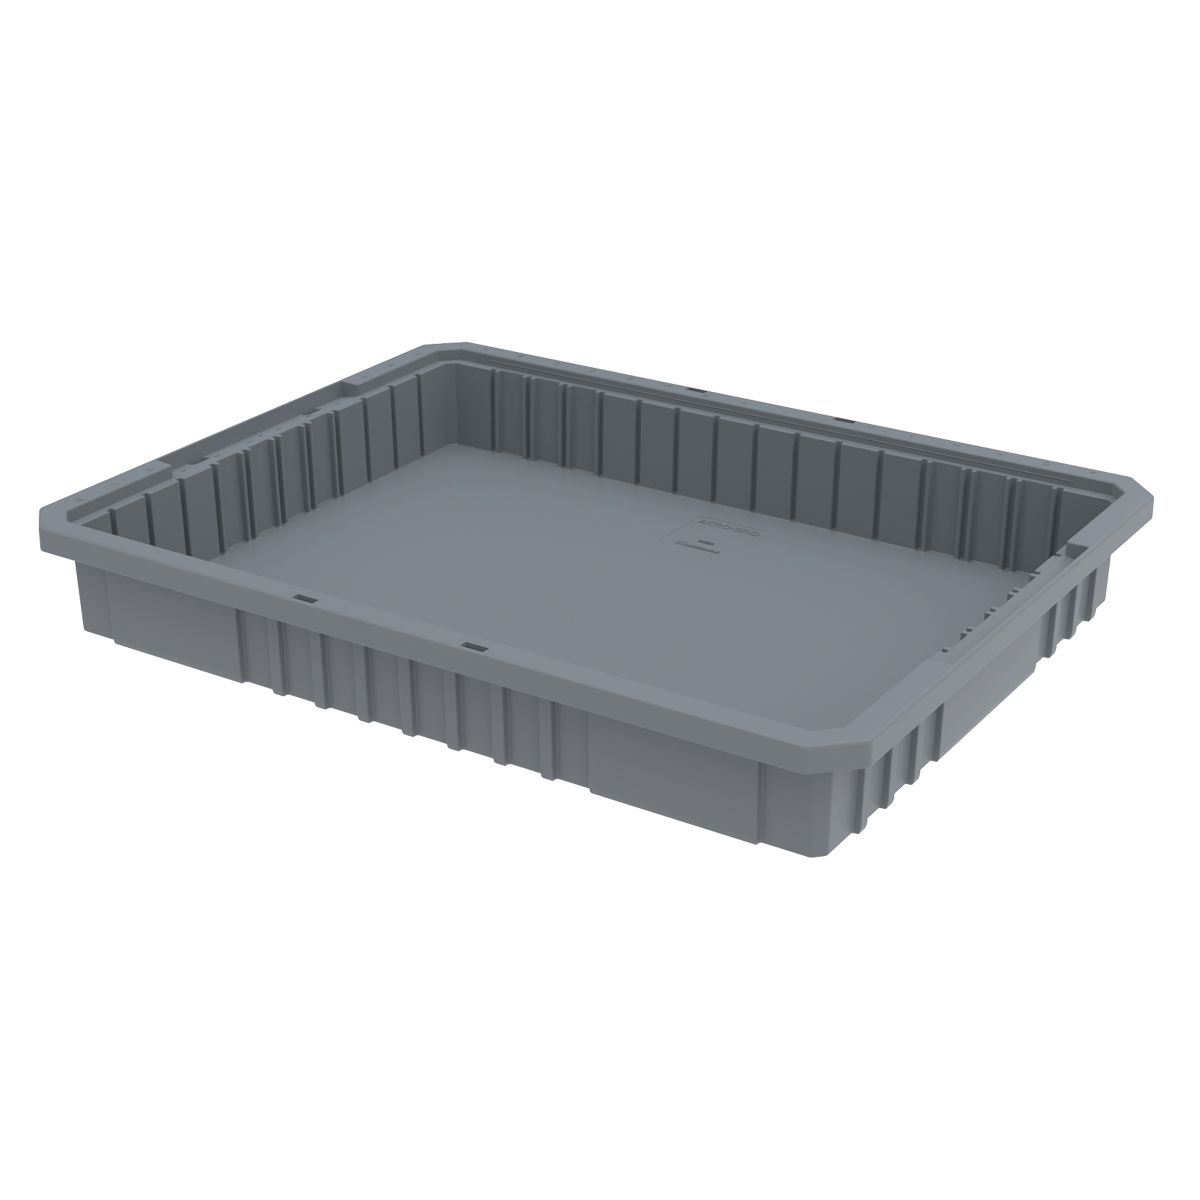 Akro-Grid Dividable Box 22-1/2 x 17-3/8 x 3, Gray (33223GREY).  This item sold in carton quantities of 6.